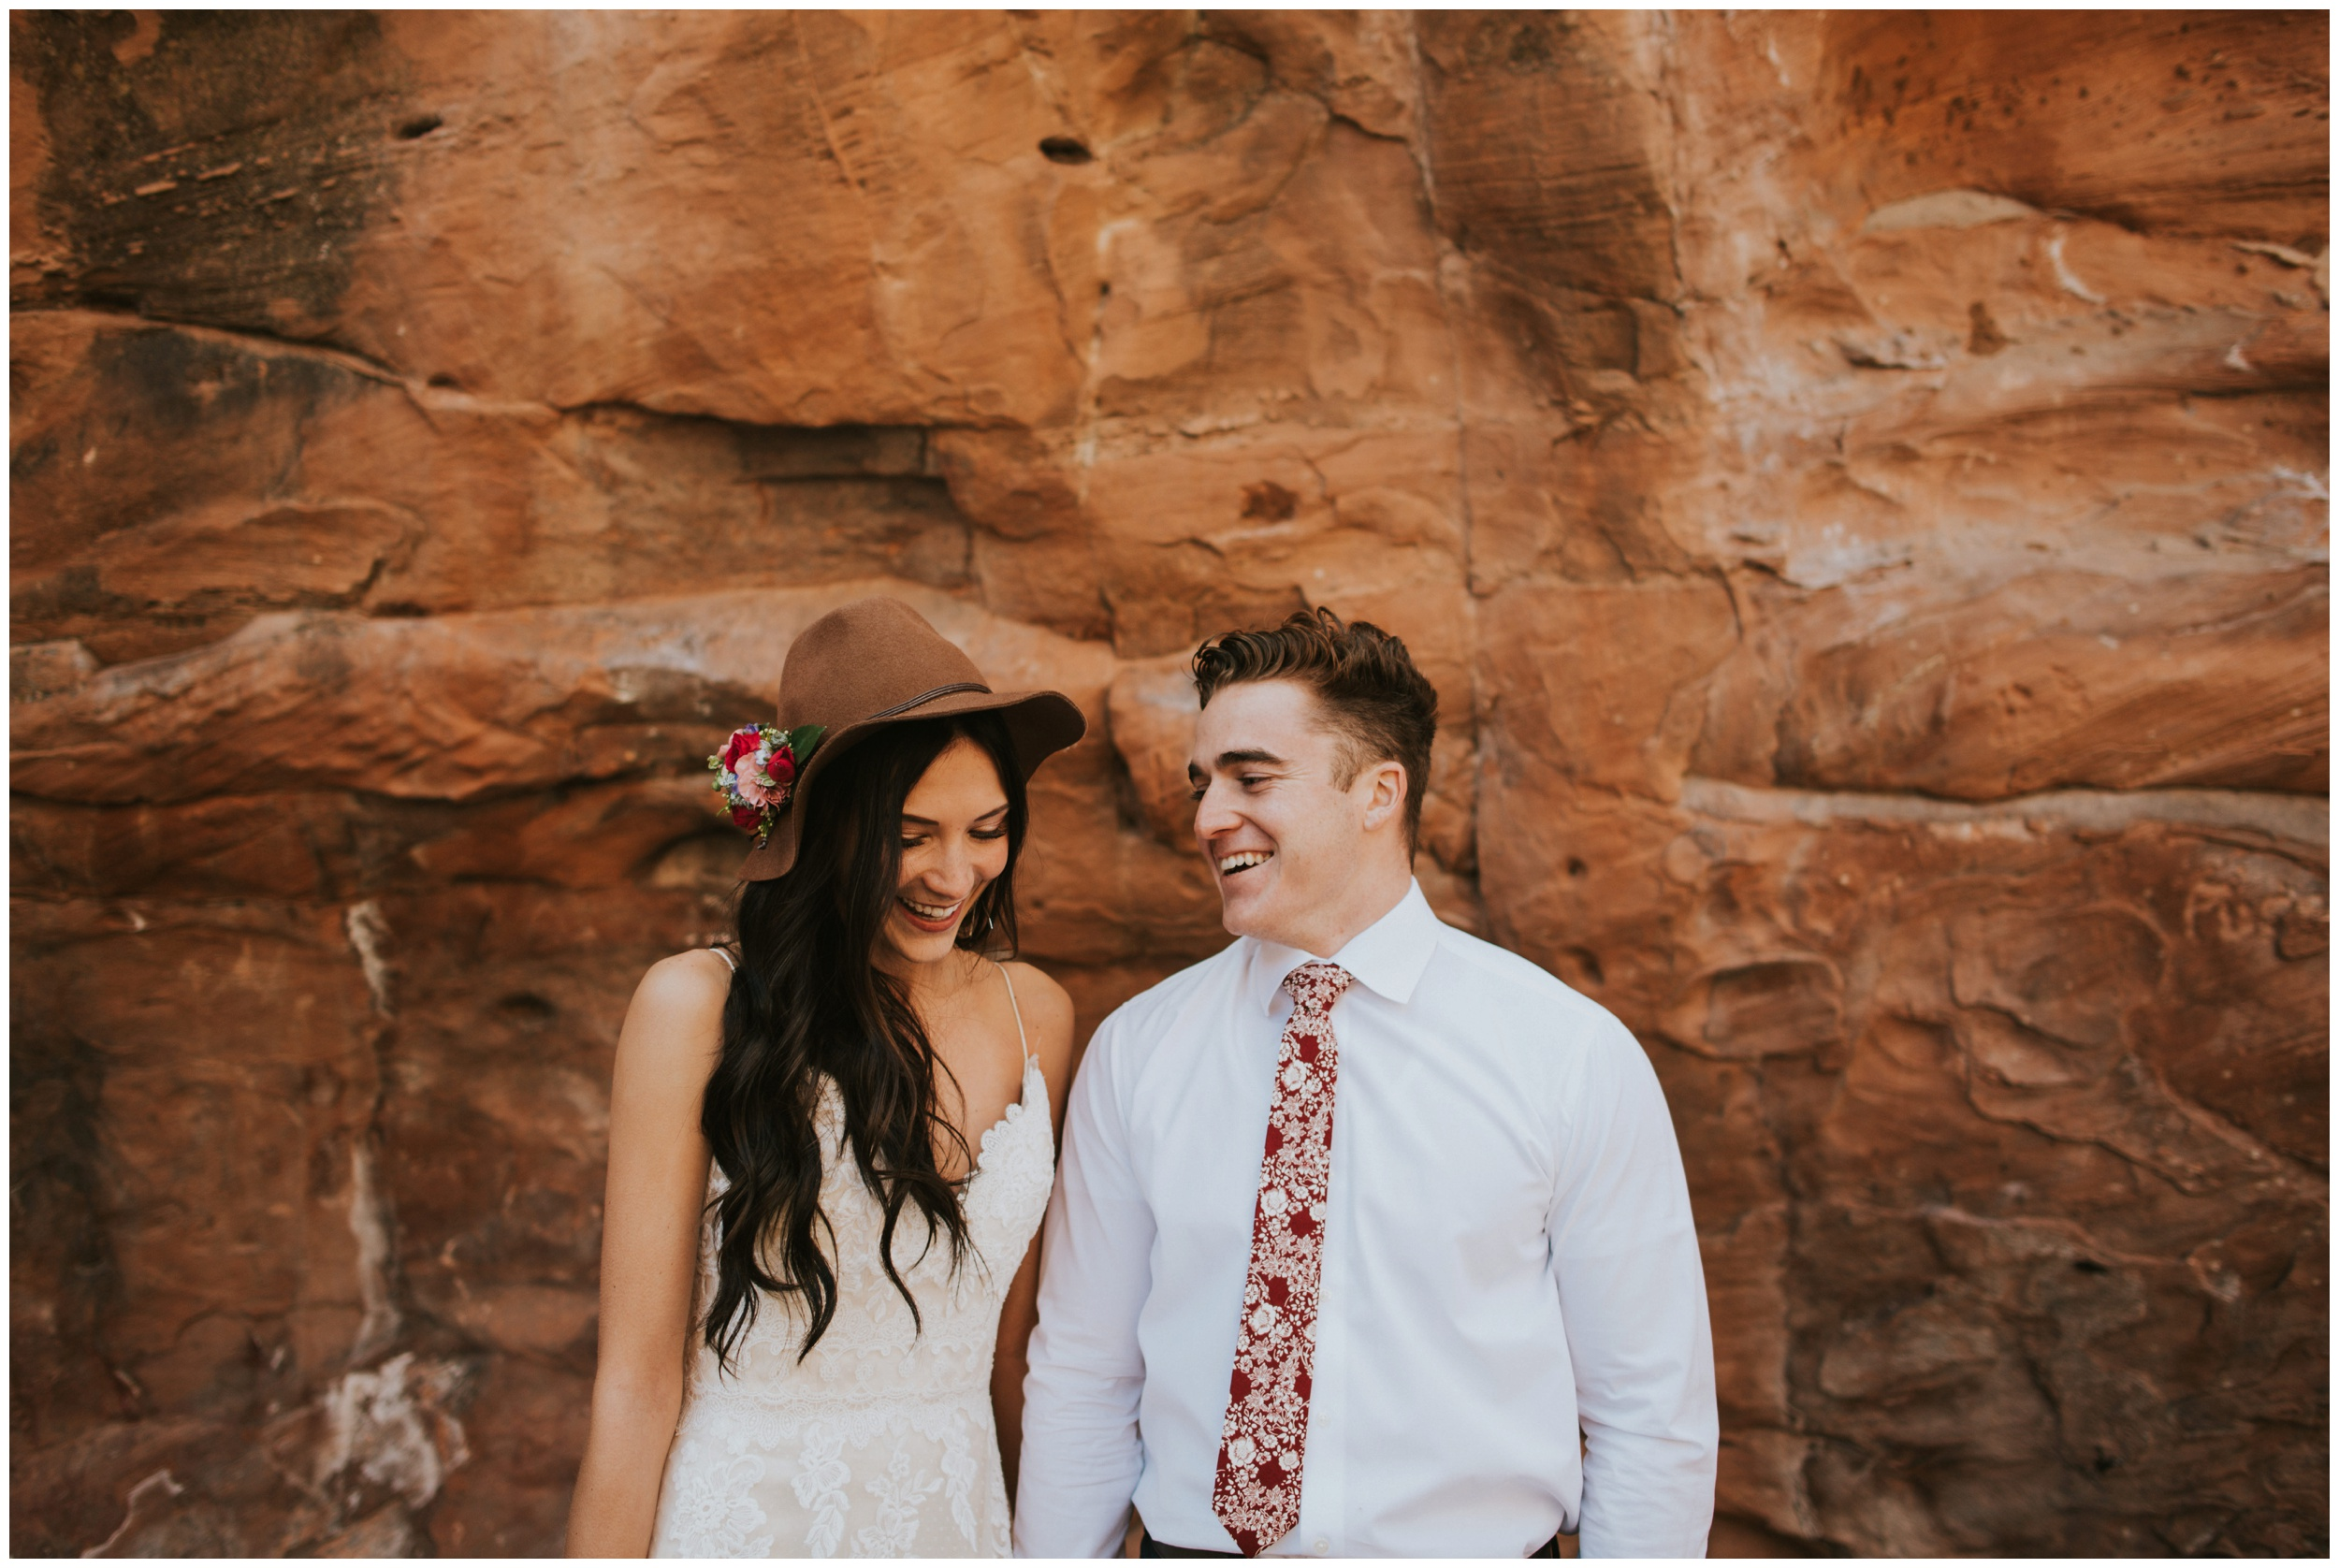 Cute couple in love, laughing at red rock canyon | wedding photographer www.riversandroadsphotography.com